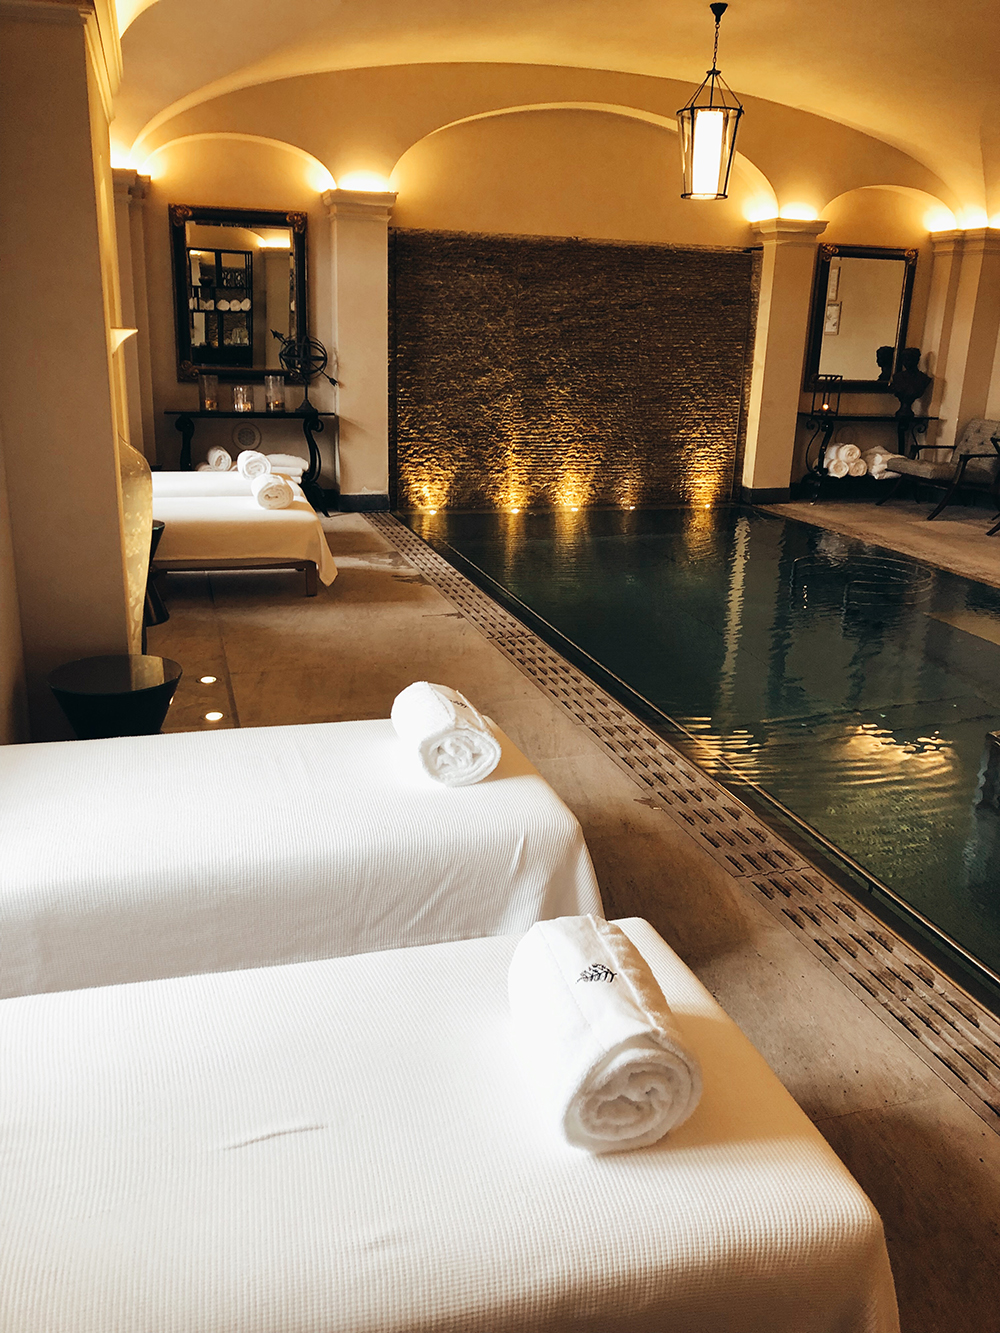 The vitality pool at the AVA Spa.